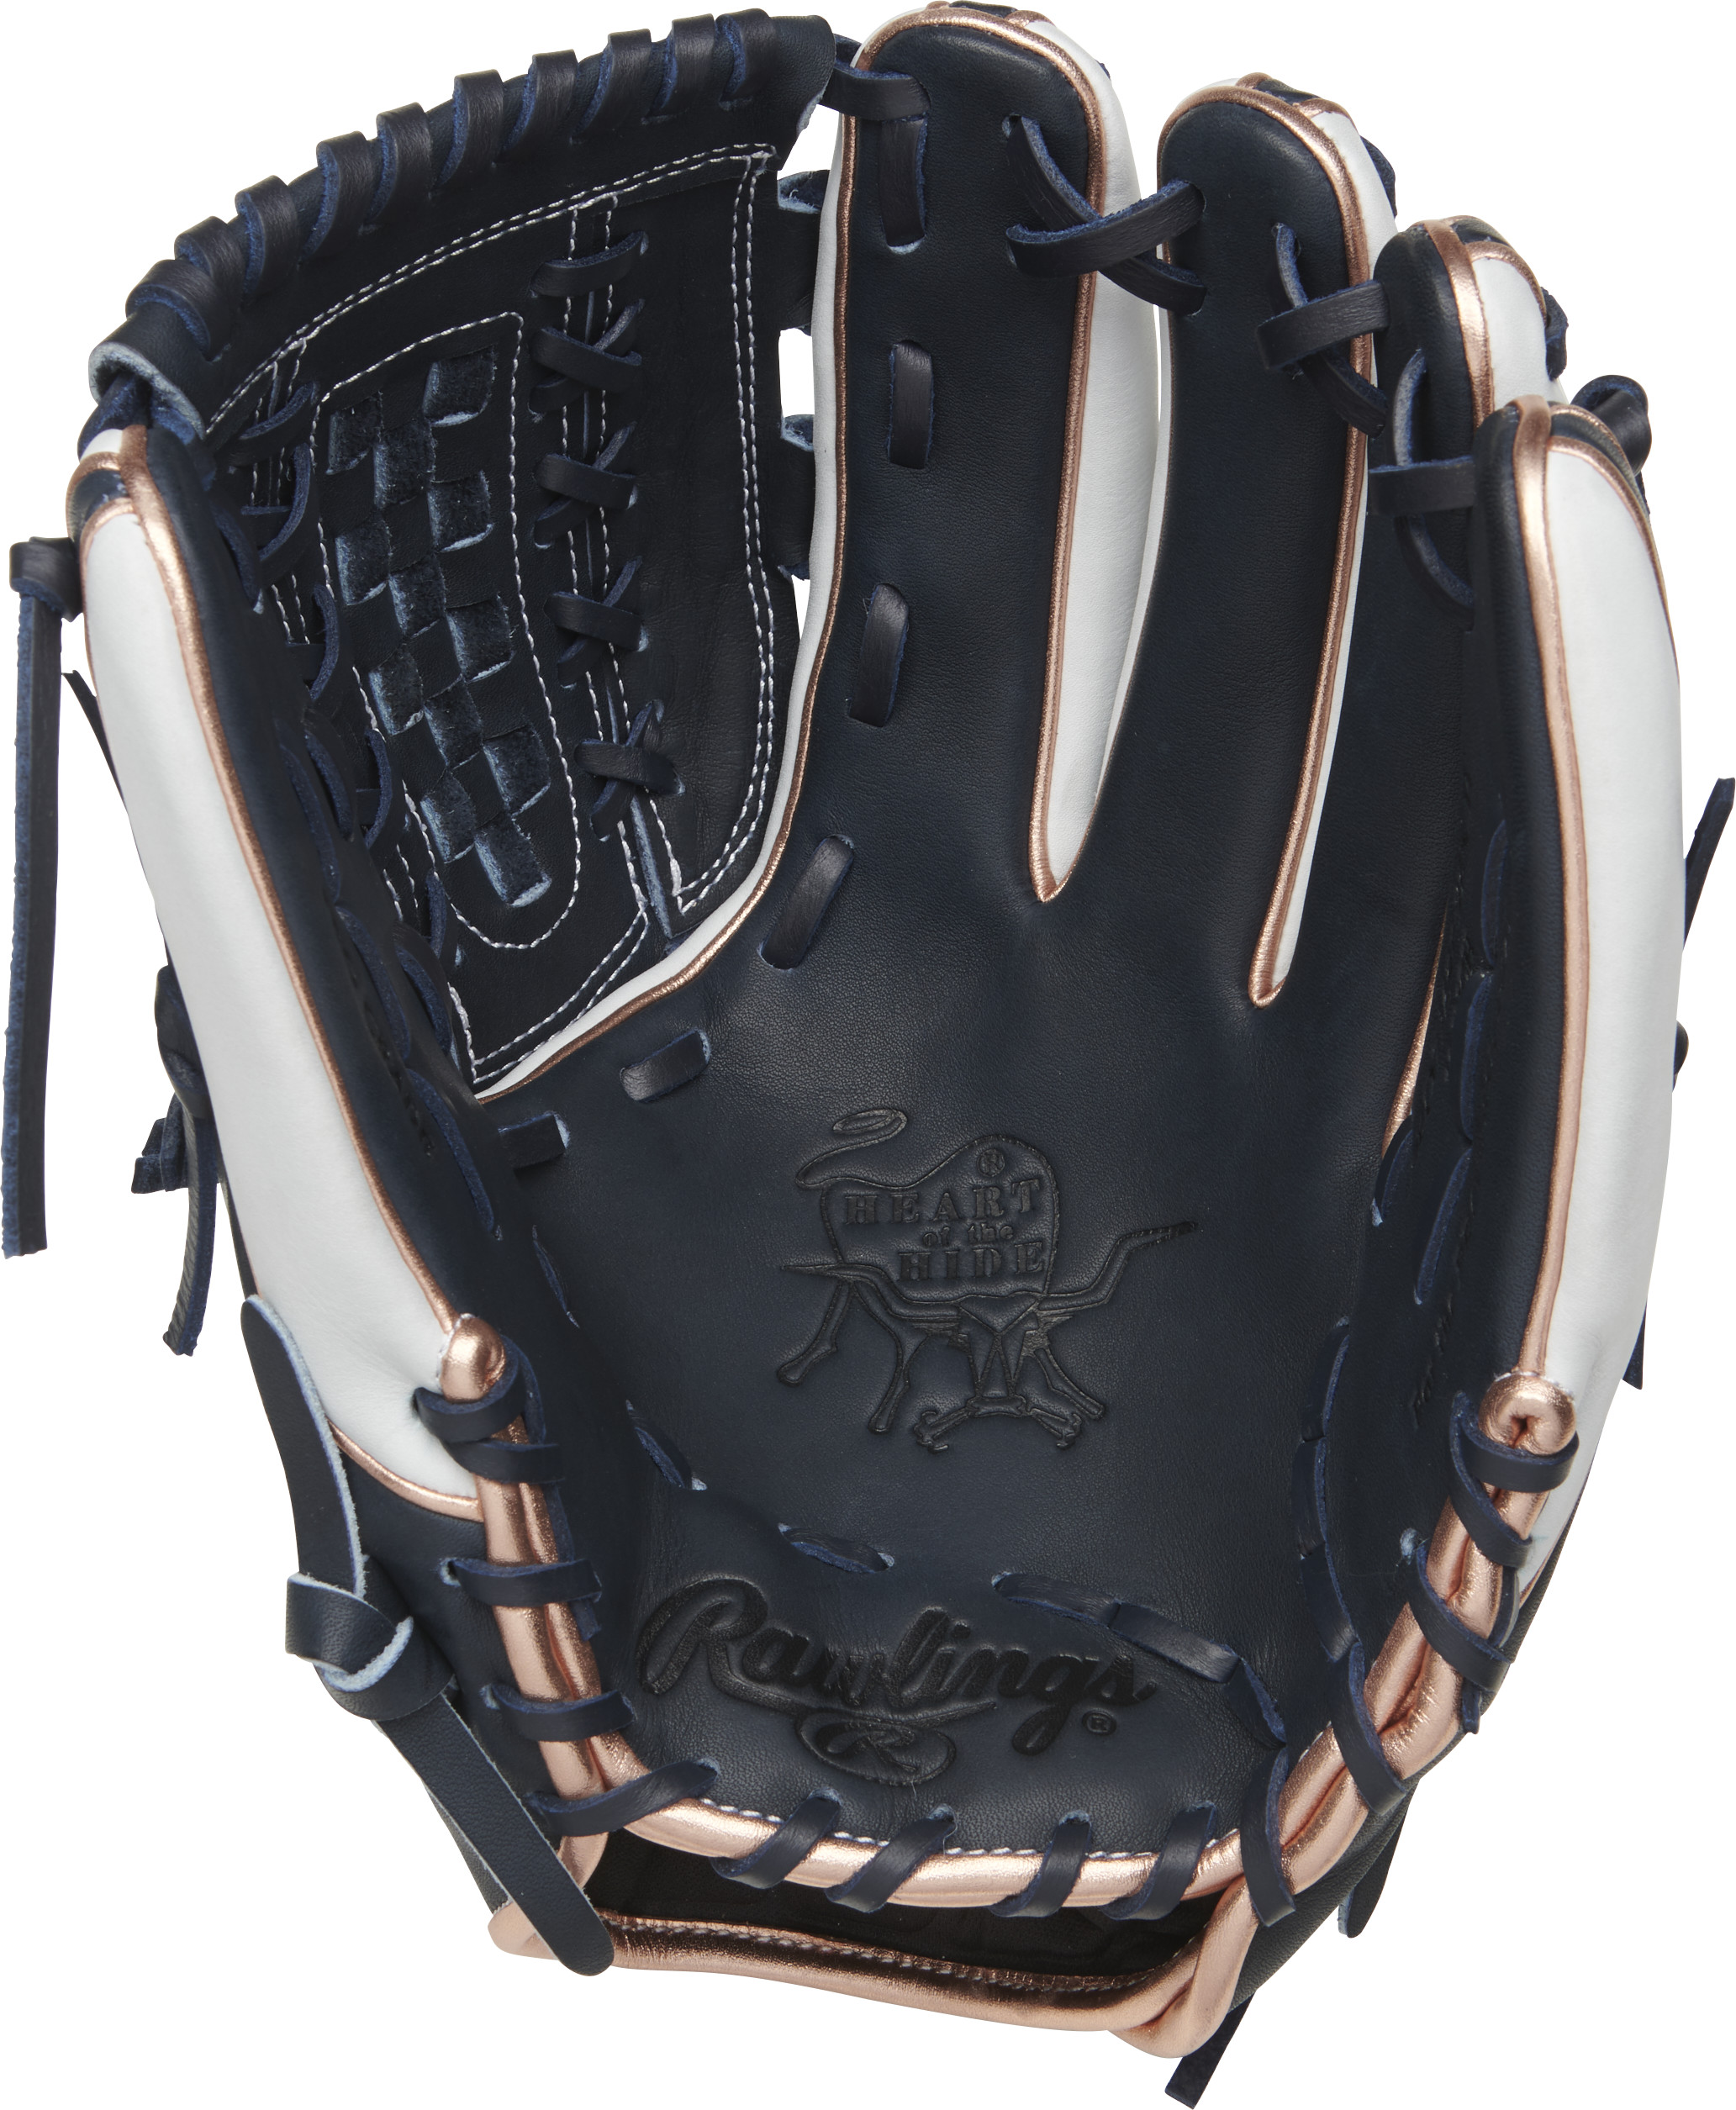 http://www.bestbatdeals.com/images/rawlingsgloves/PRO716SB-18NW-1.jpg